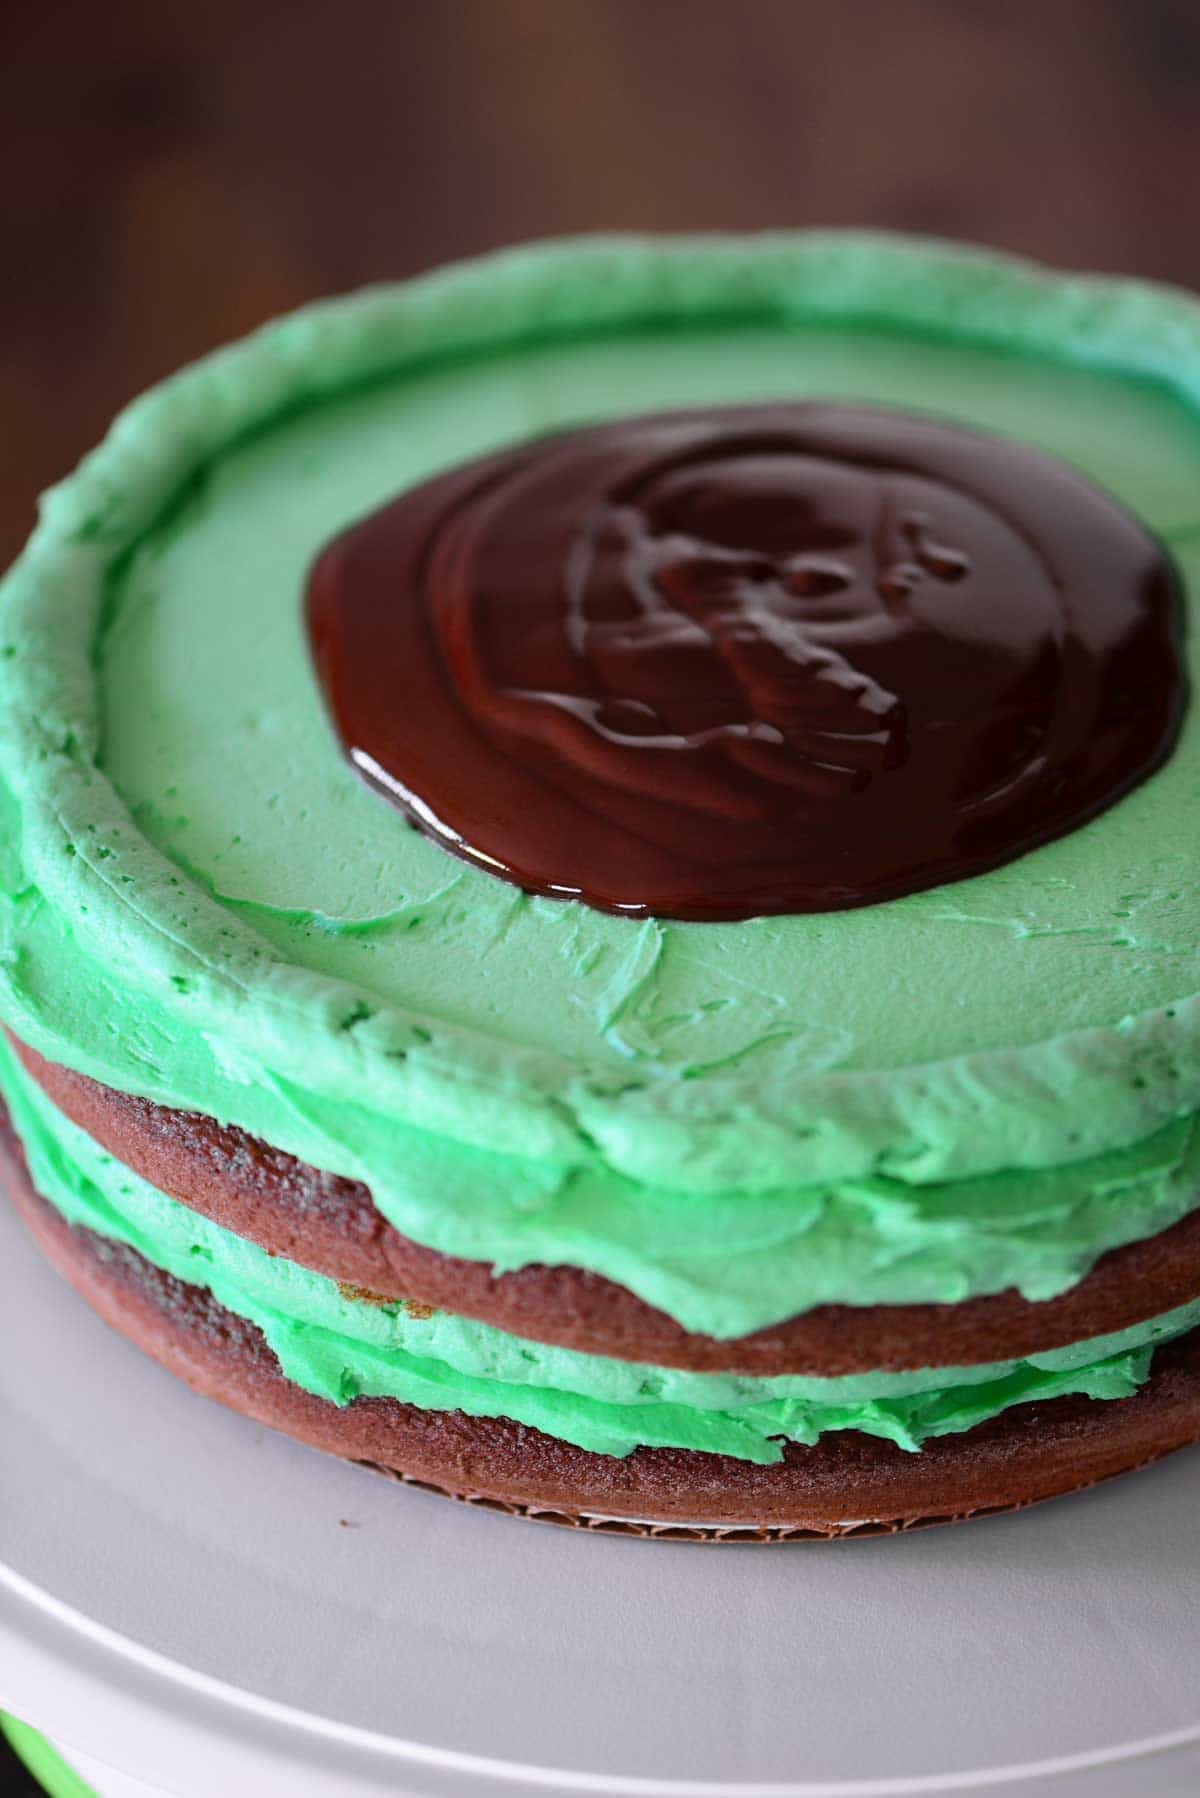 frosting a chocolate mint layer cake